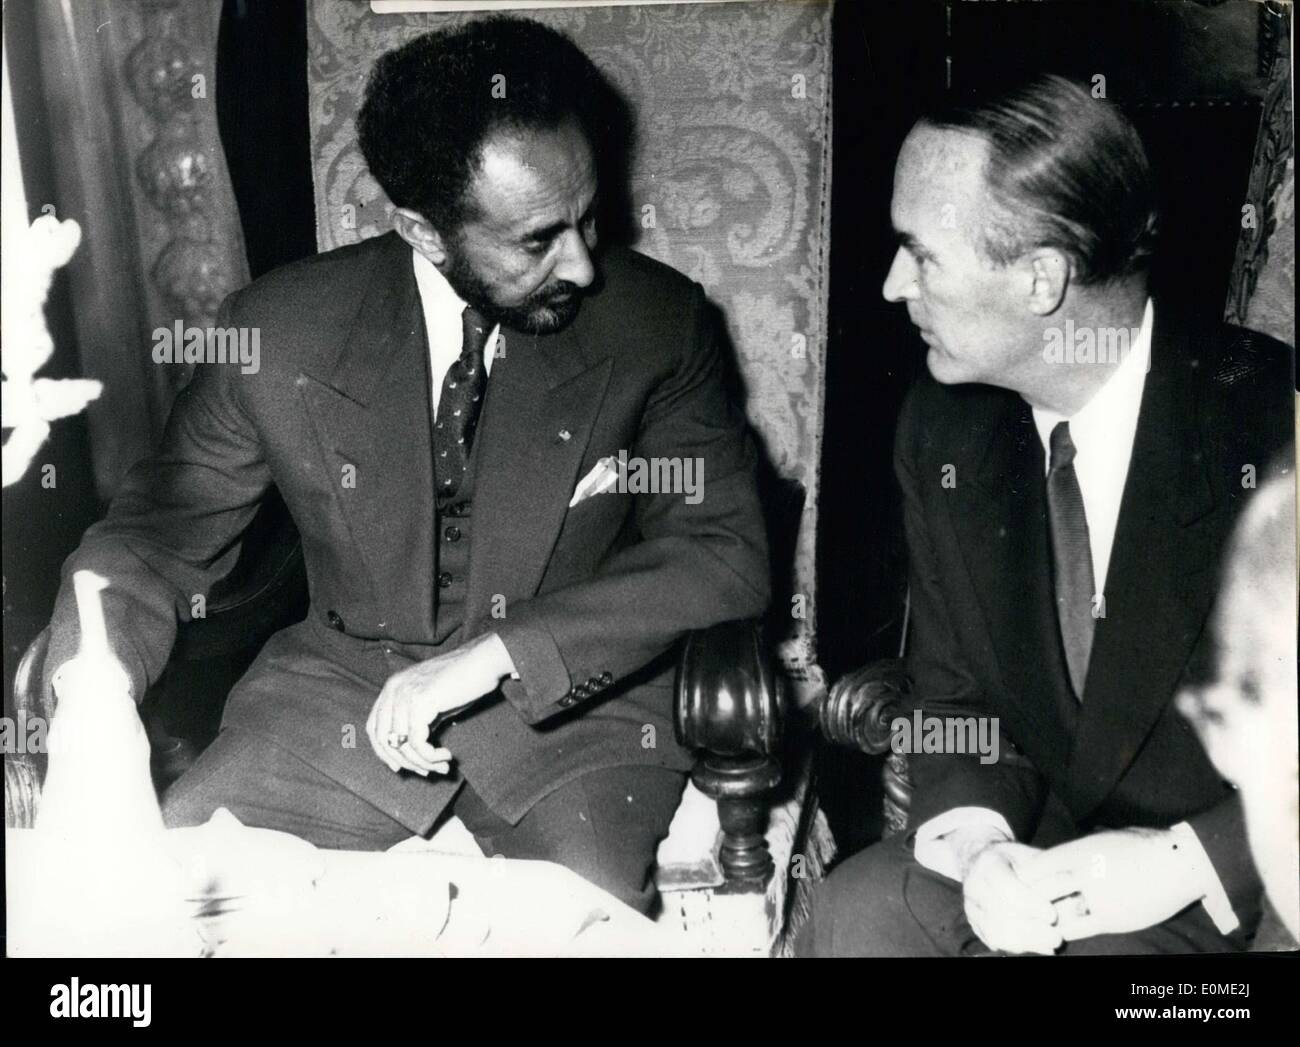 Nov. 11, 1954 - Haile Selassie negotiates with Krupp. The high point of the tour of Ethiopian Kaiser Haile Selassie I through the Ruhr region of German. He speaks with industrialist Alfried Krupp at Villa H?gel in Essen. Pictured: The Kaiser in conversation with Krupp. - Stock Image